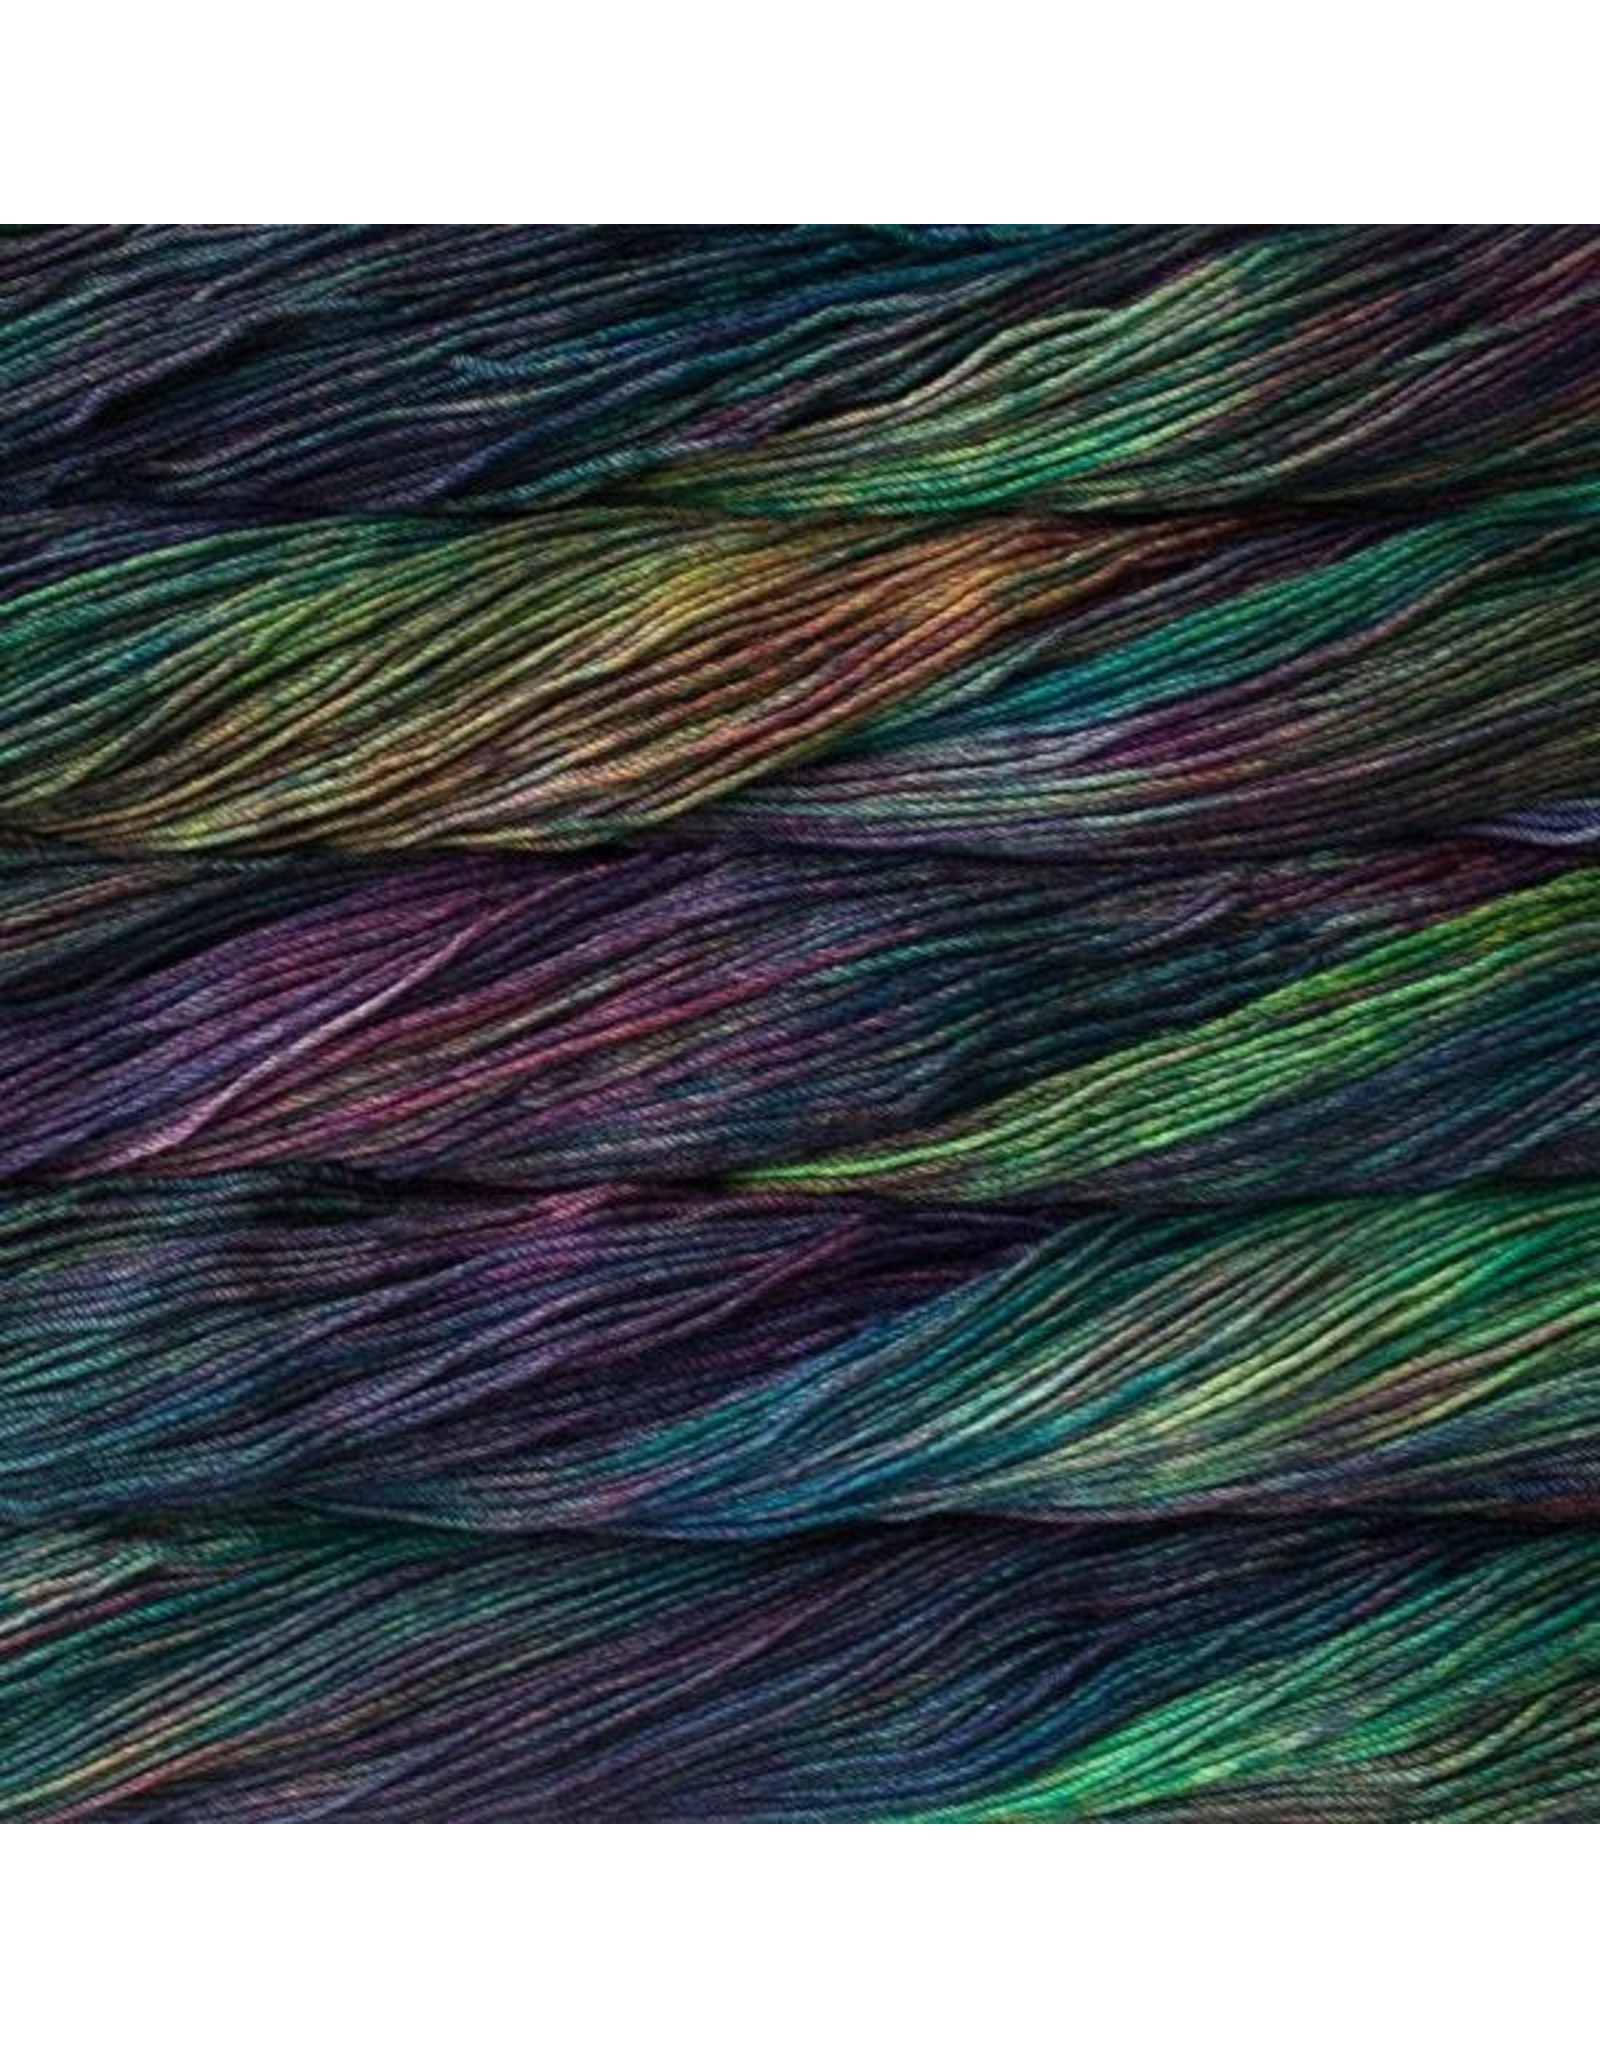 Malabrigo Secret - Arroyo - Malabrigo